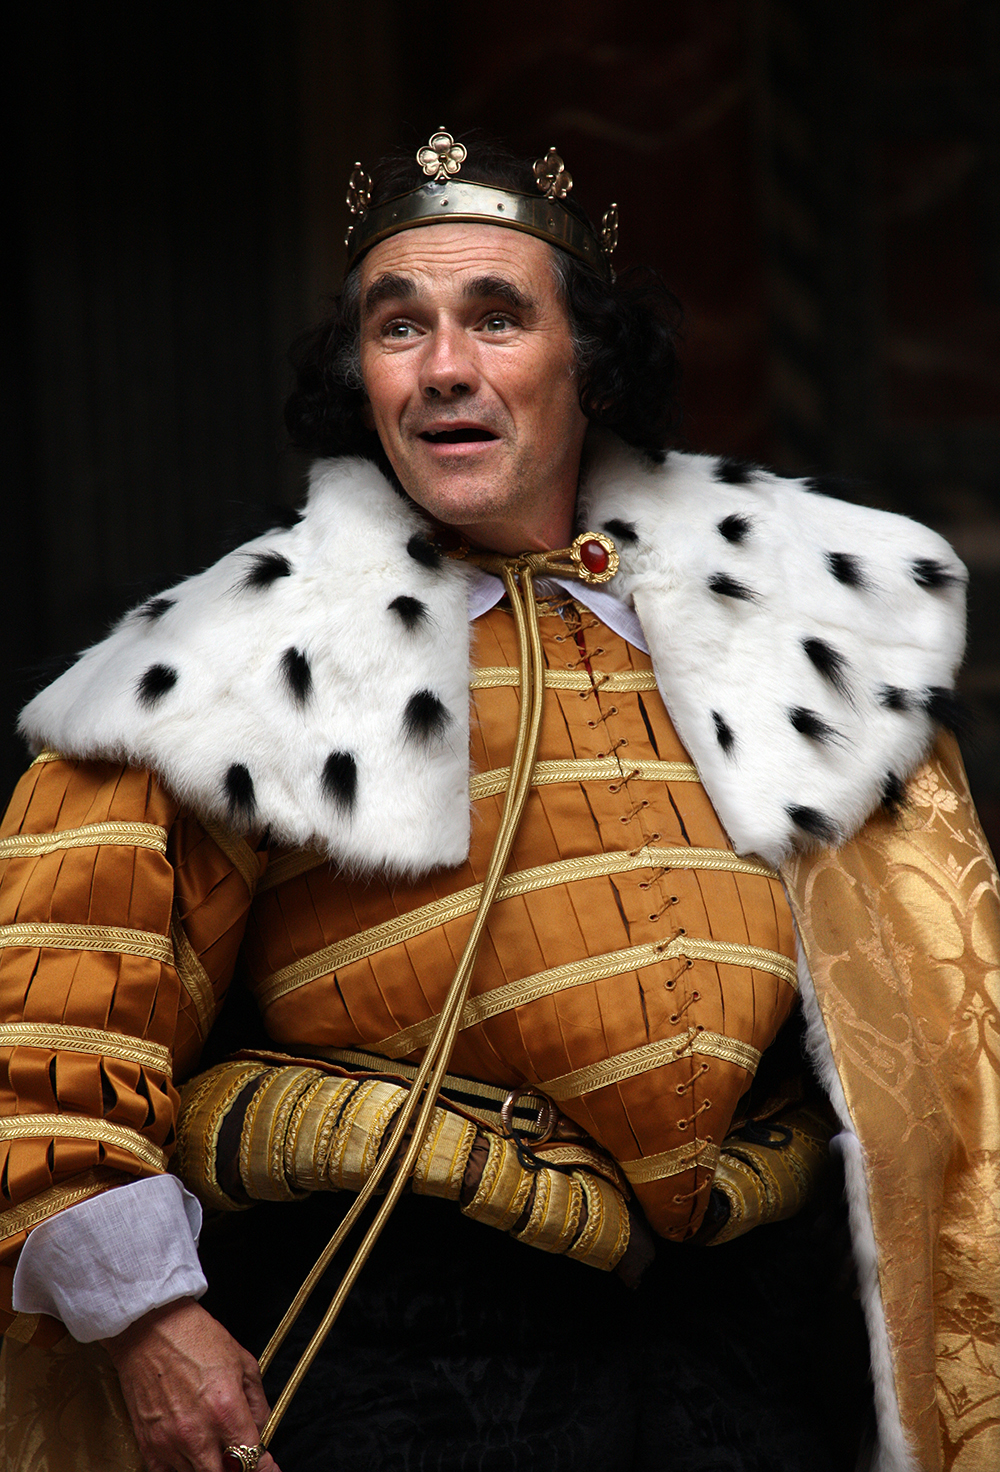 A man wearing an ermine royal cloak and golden doublet smiles.